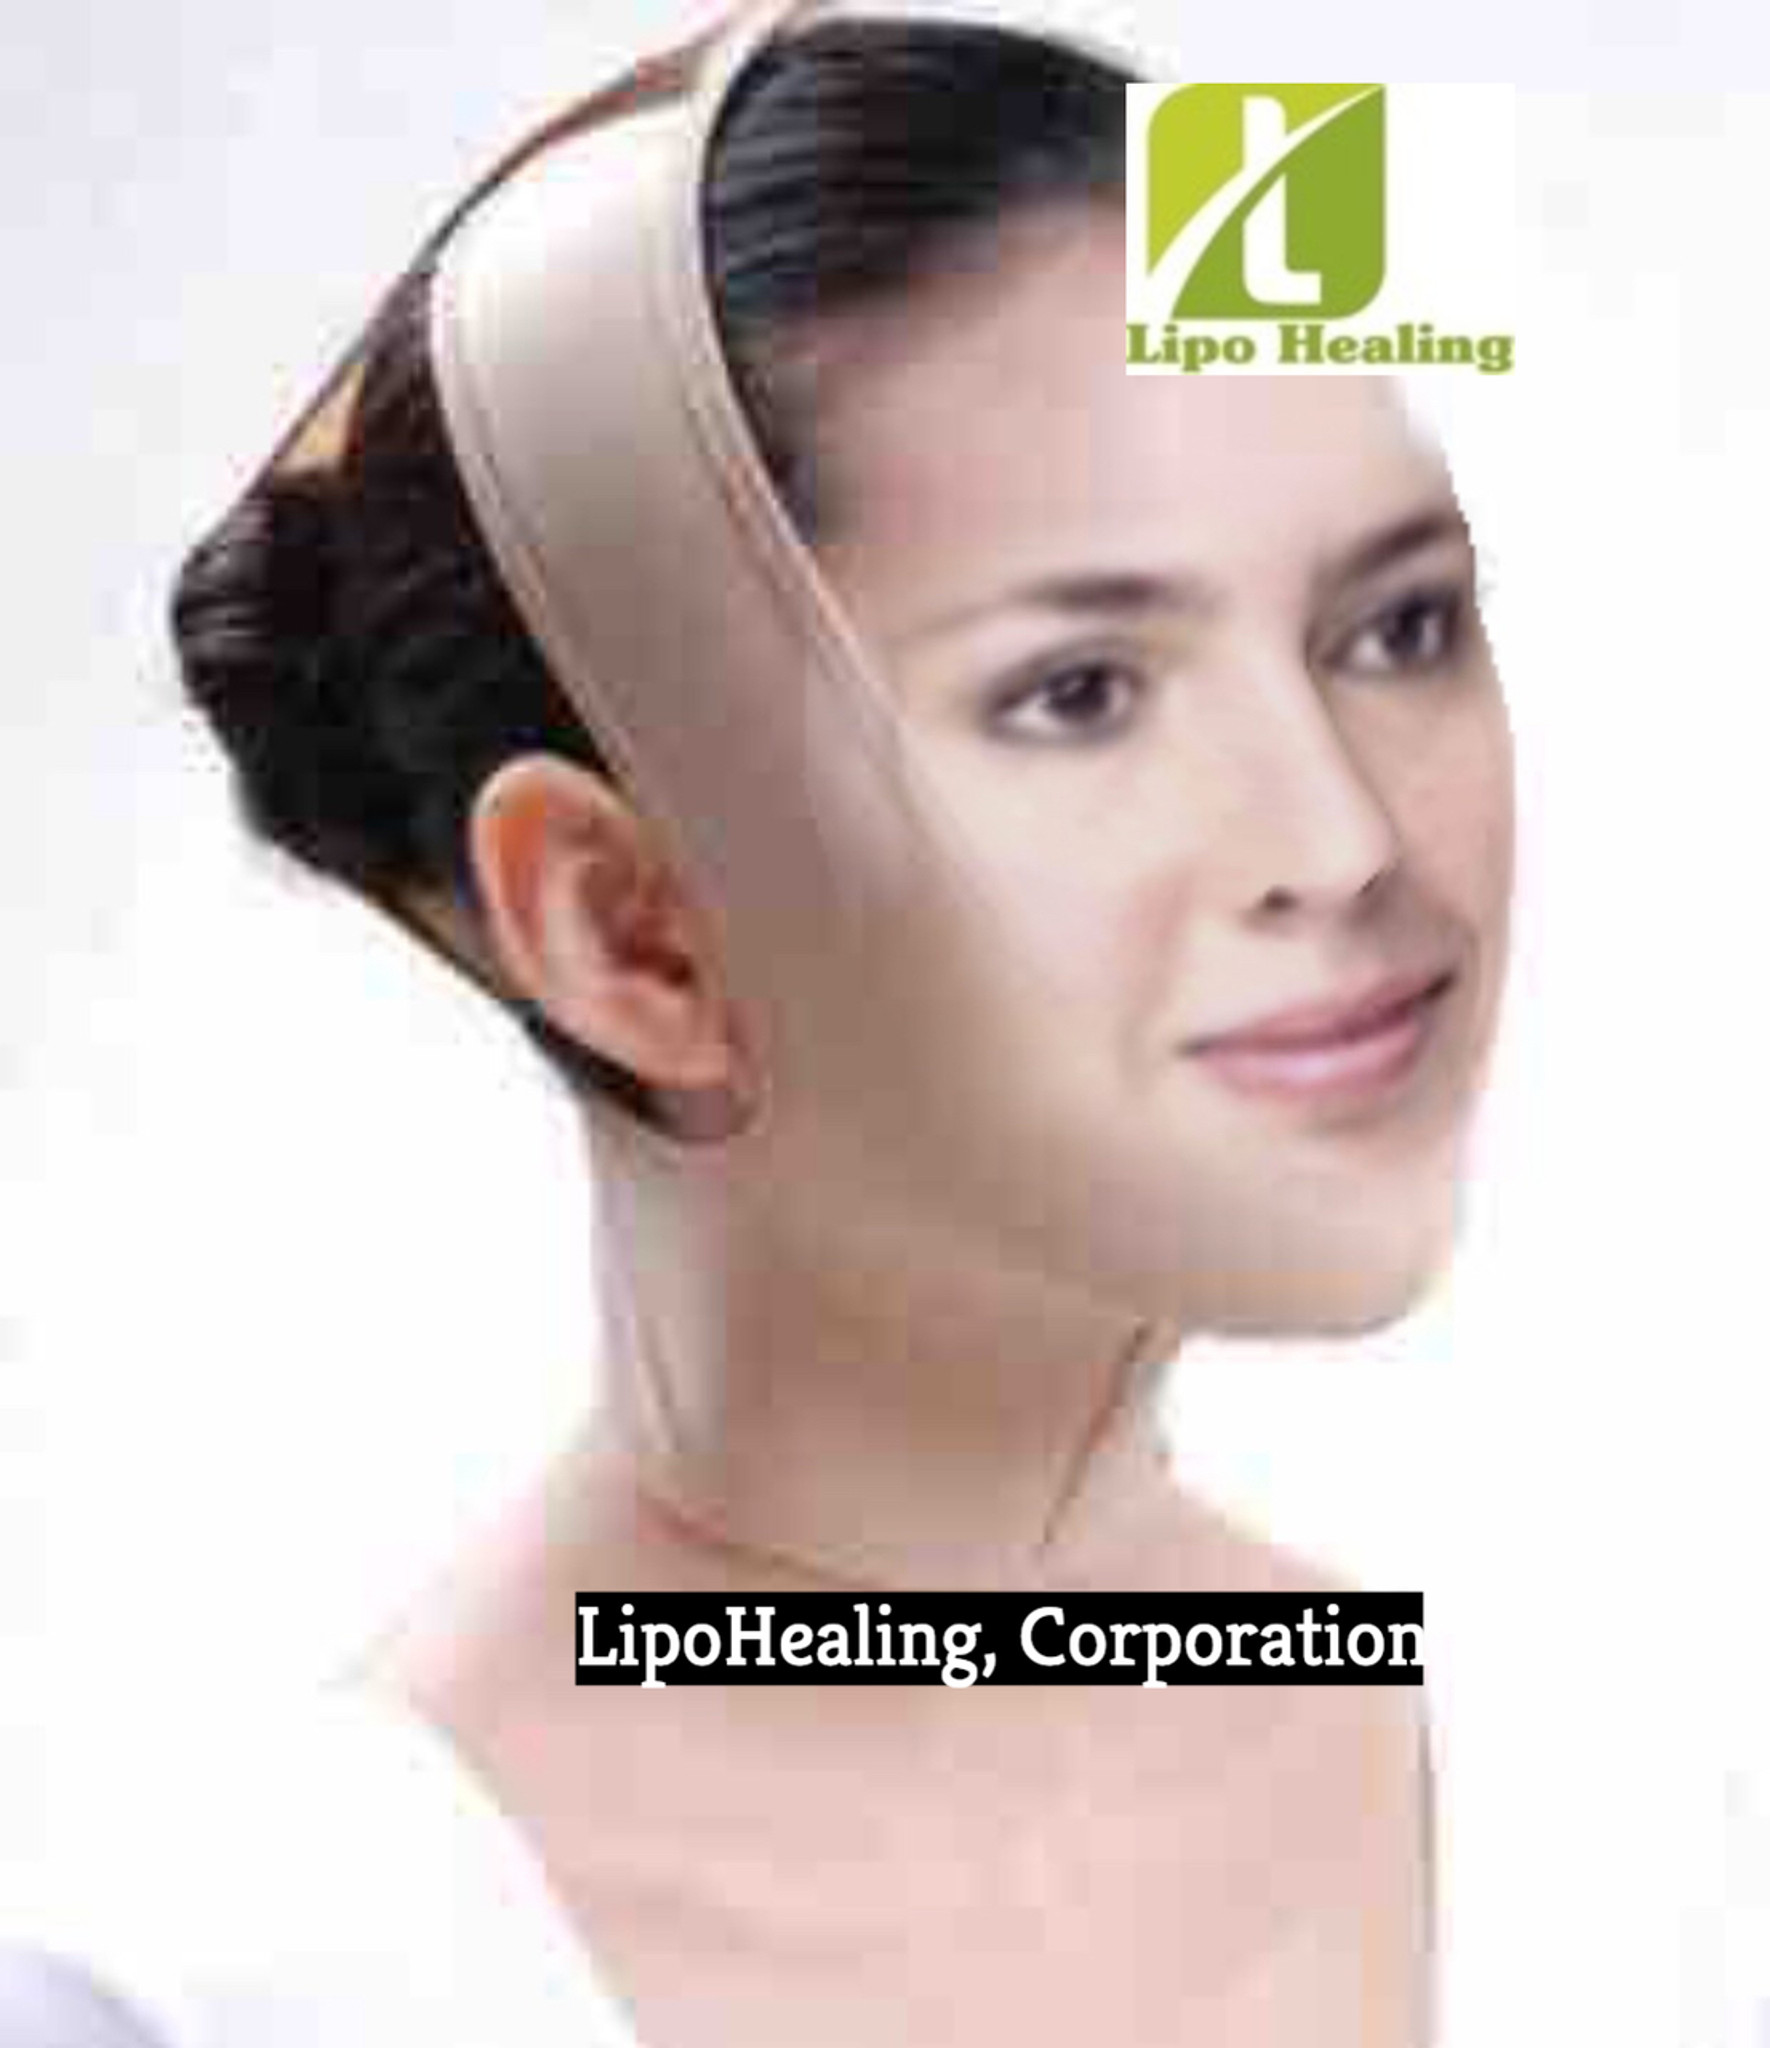 Post Surgical Chin Strap With Free Lipofoam Strips and Body Adhesive